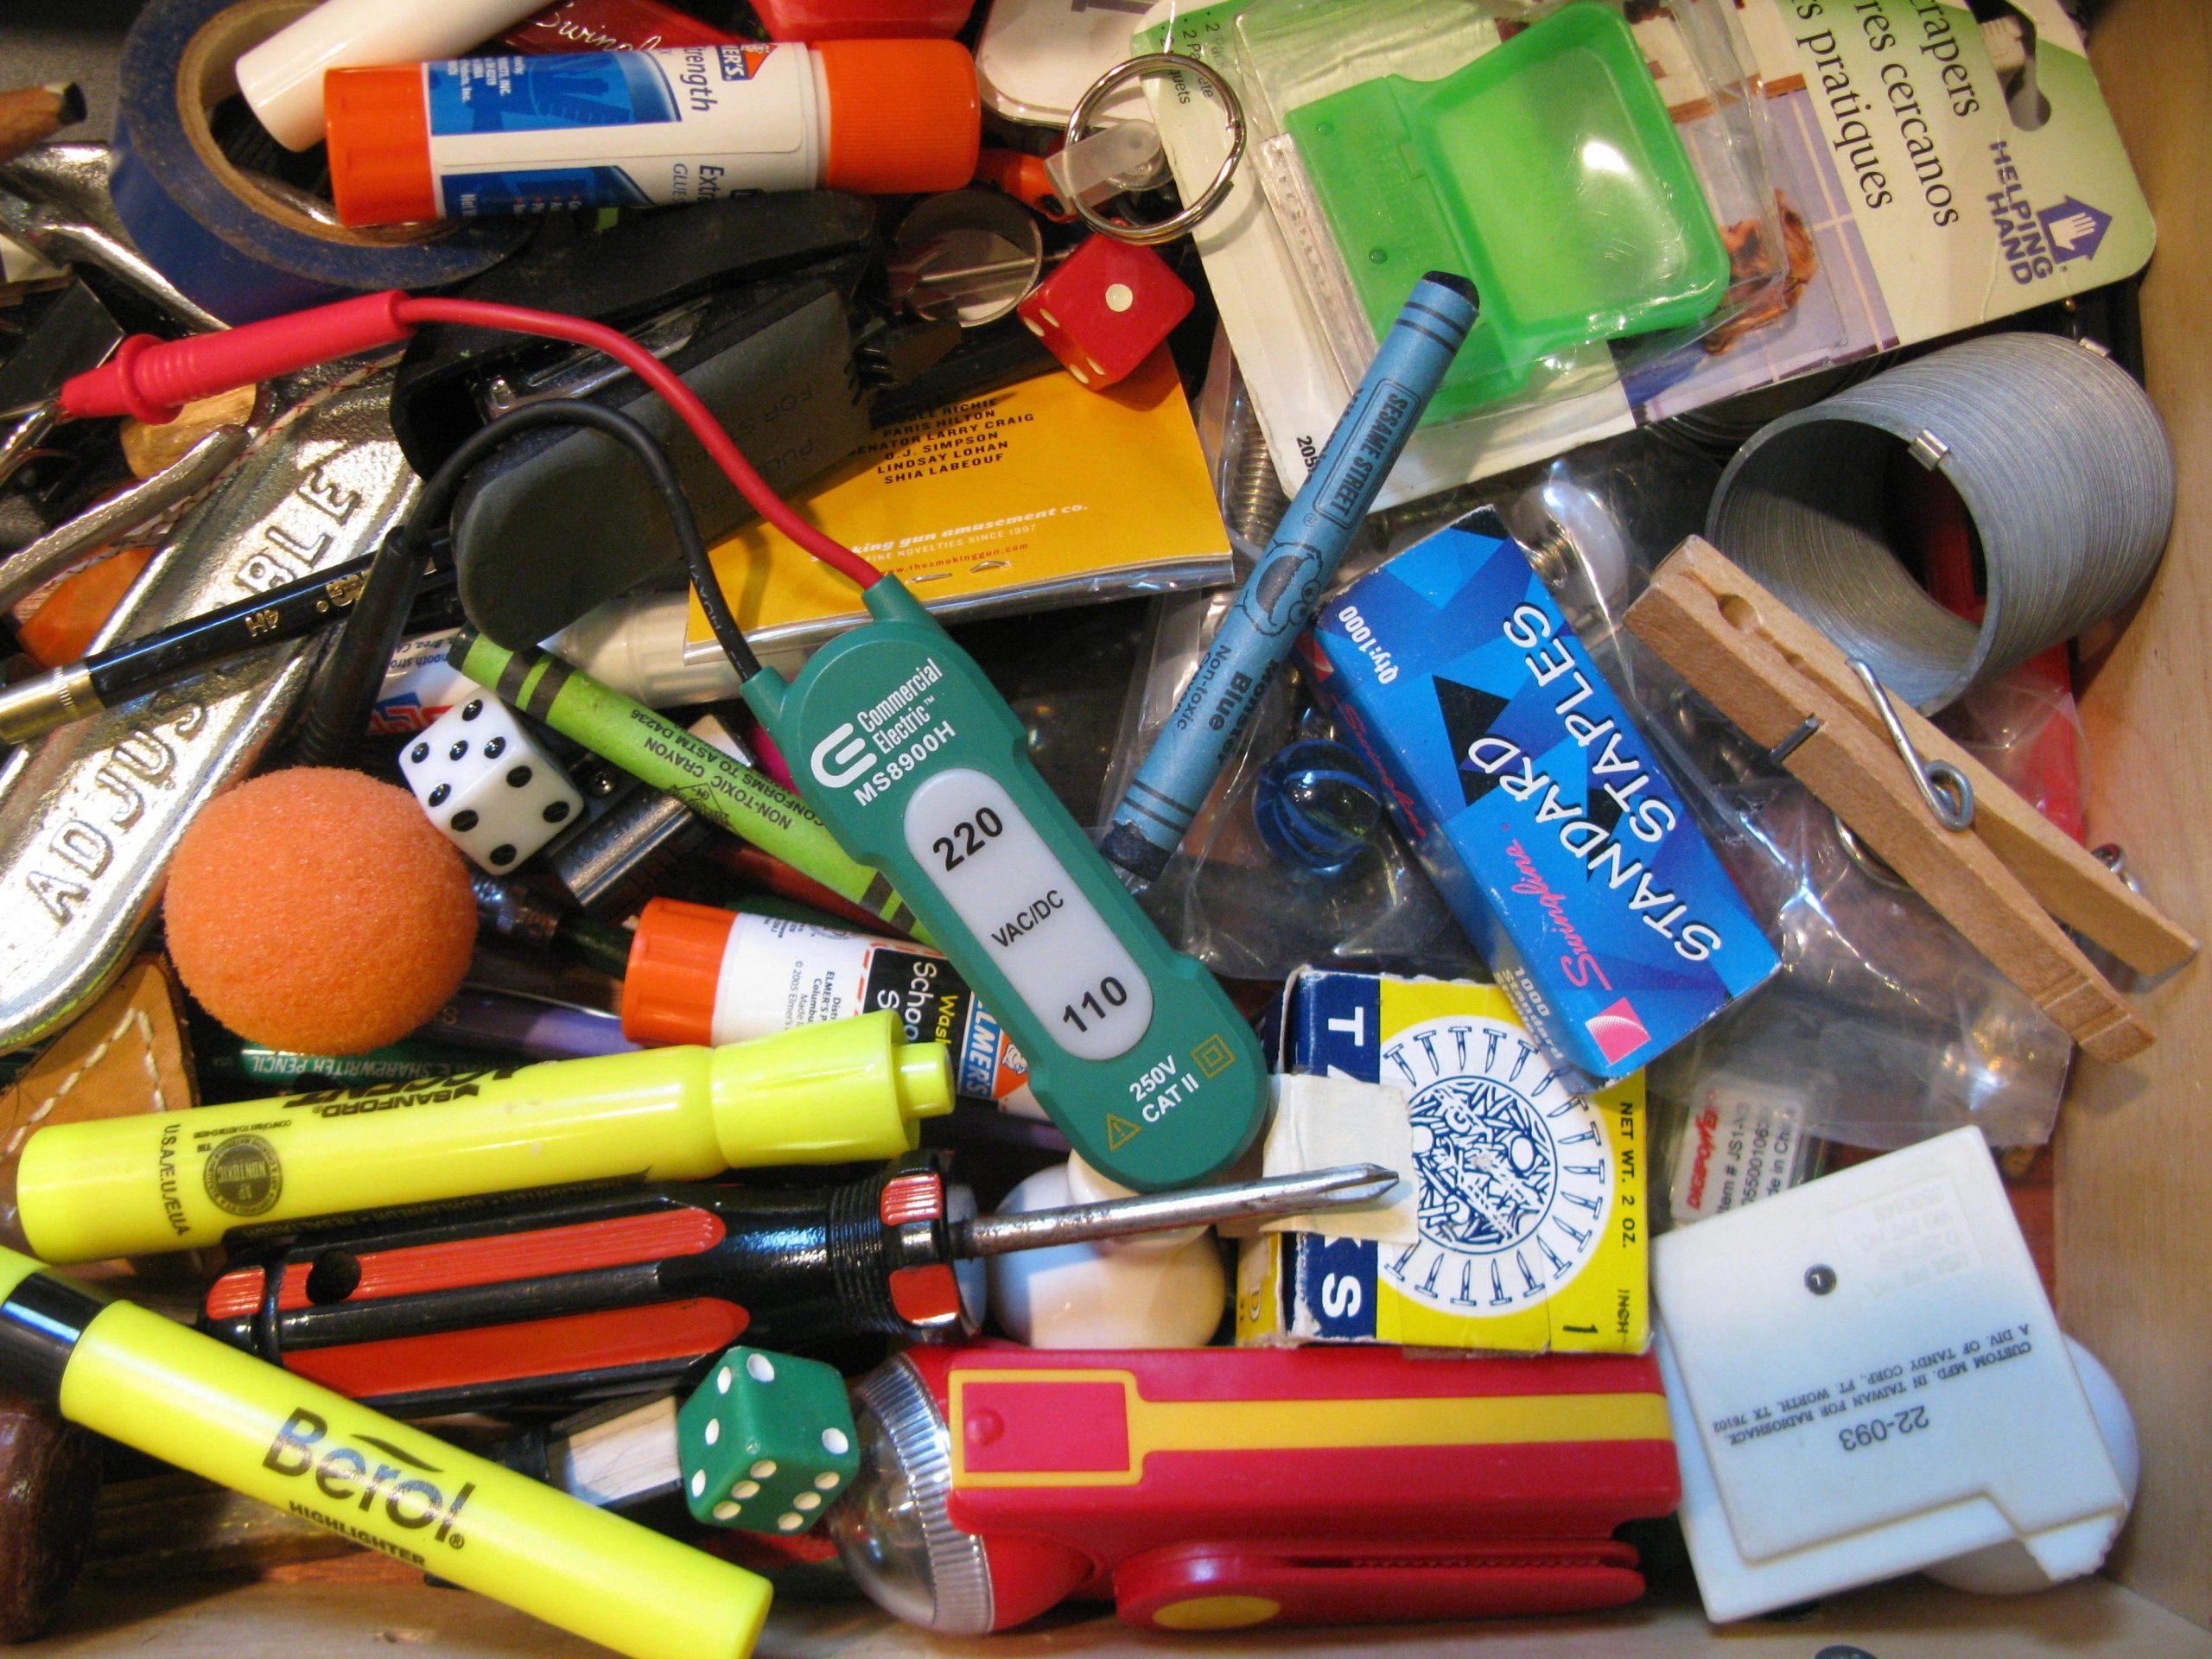 062 2230f7c29168981ad53bb5d42167895d945297a3 scaled - Sell Your Entire Junk Drawer?